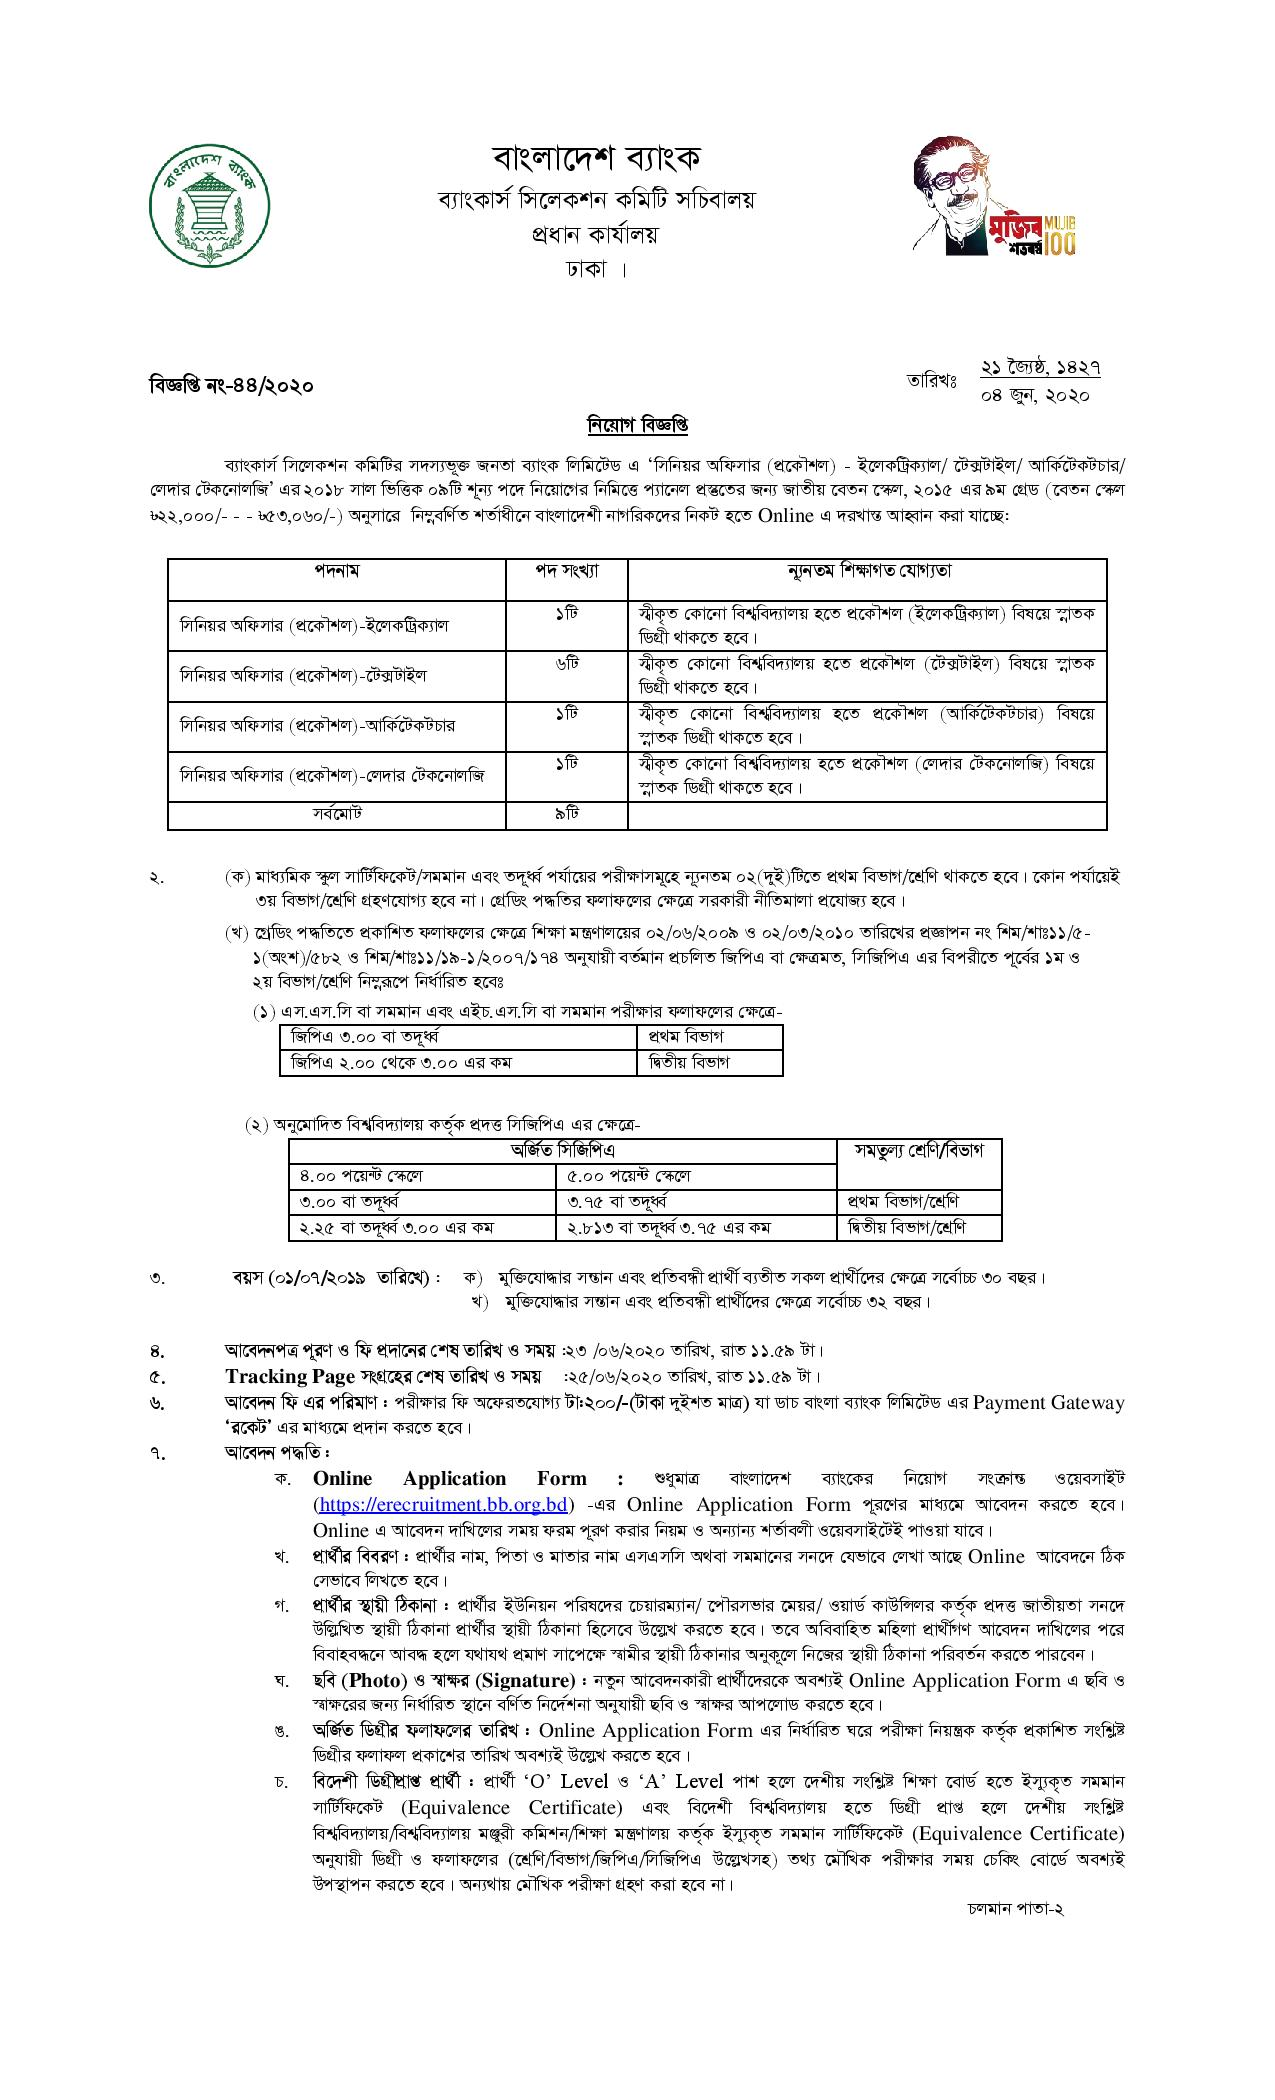 Janata Bank Limited job circular 2020